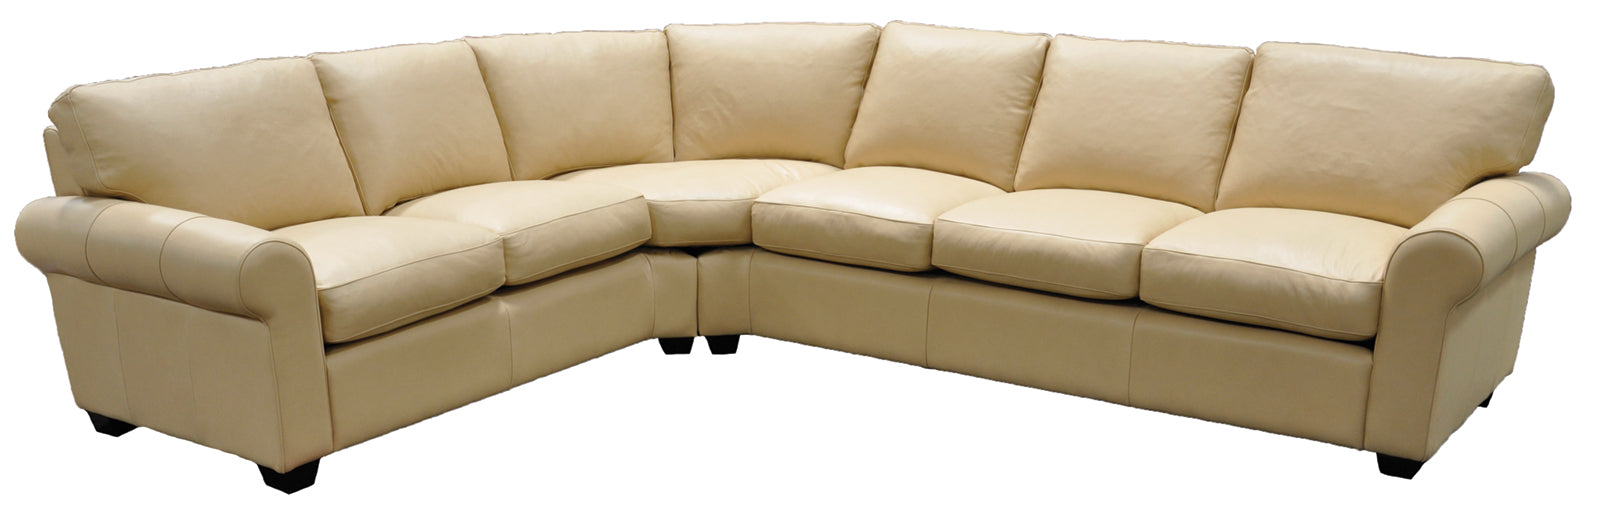 Omnia West Point Sectional - leatherfurniture